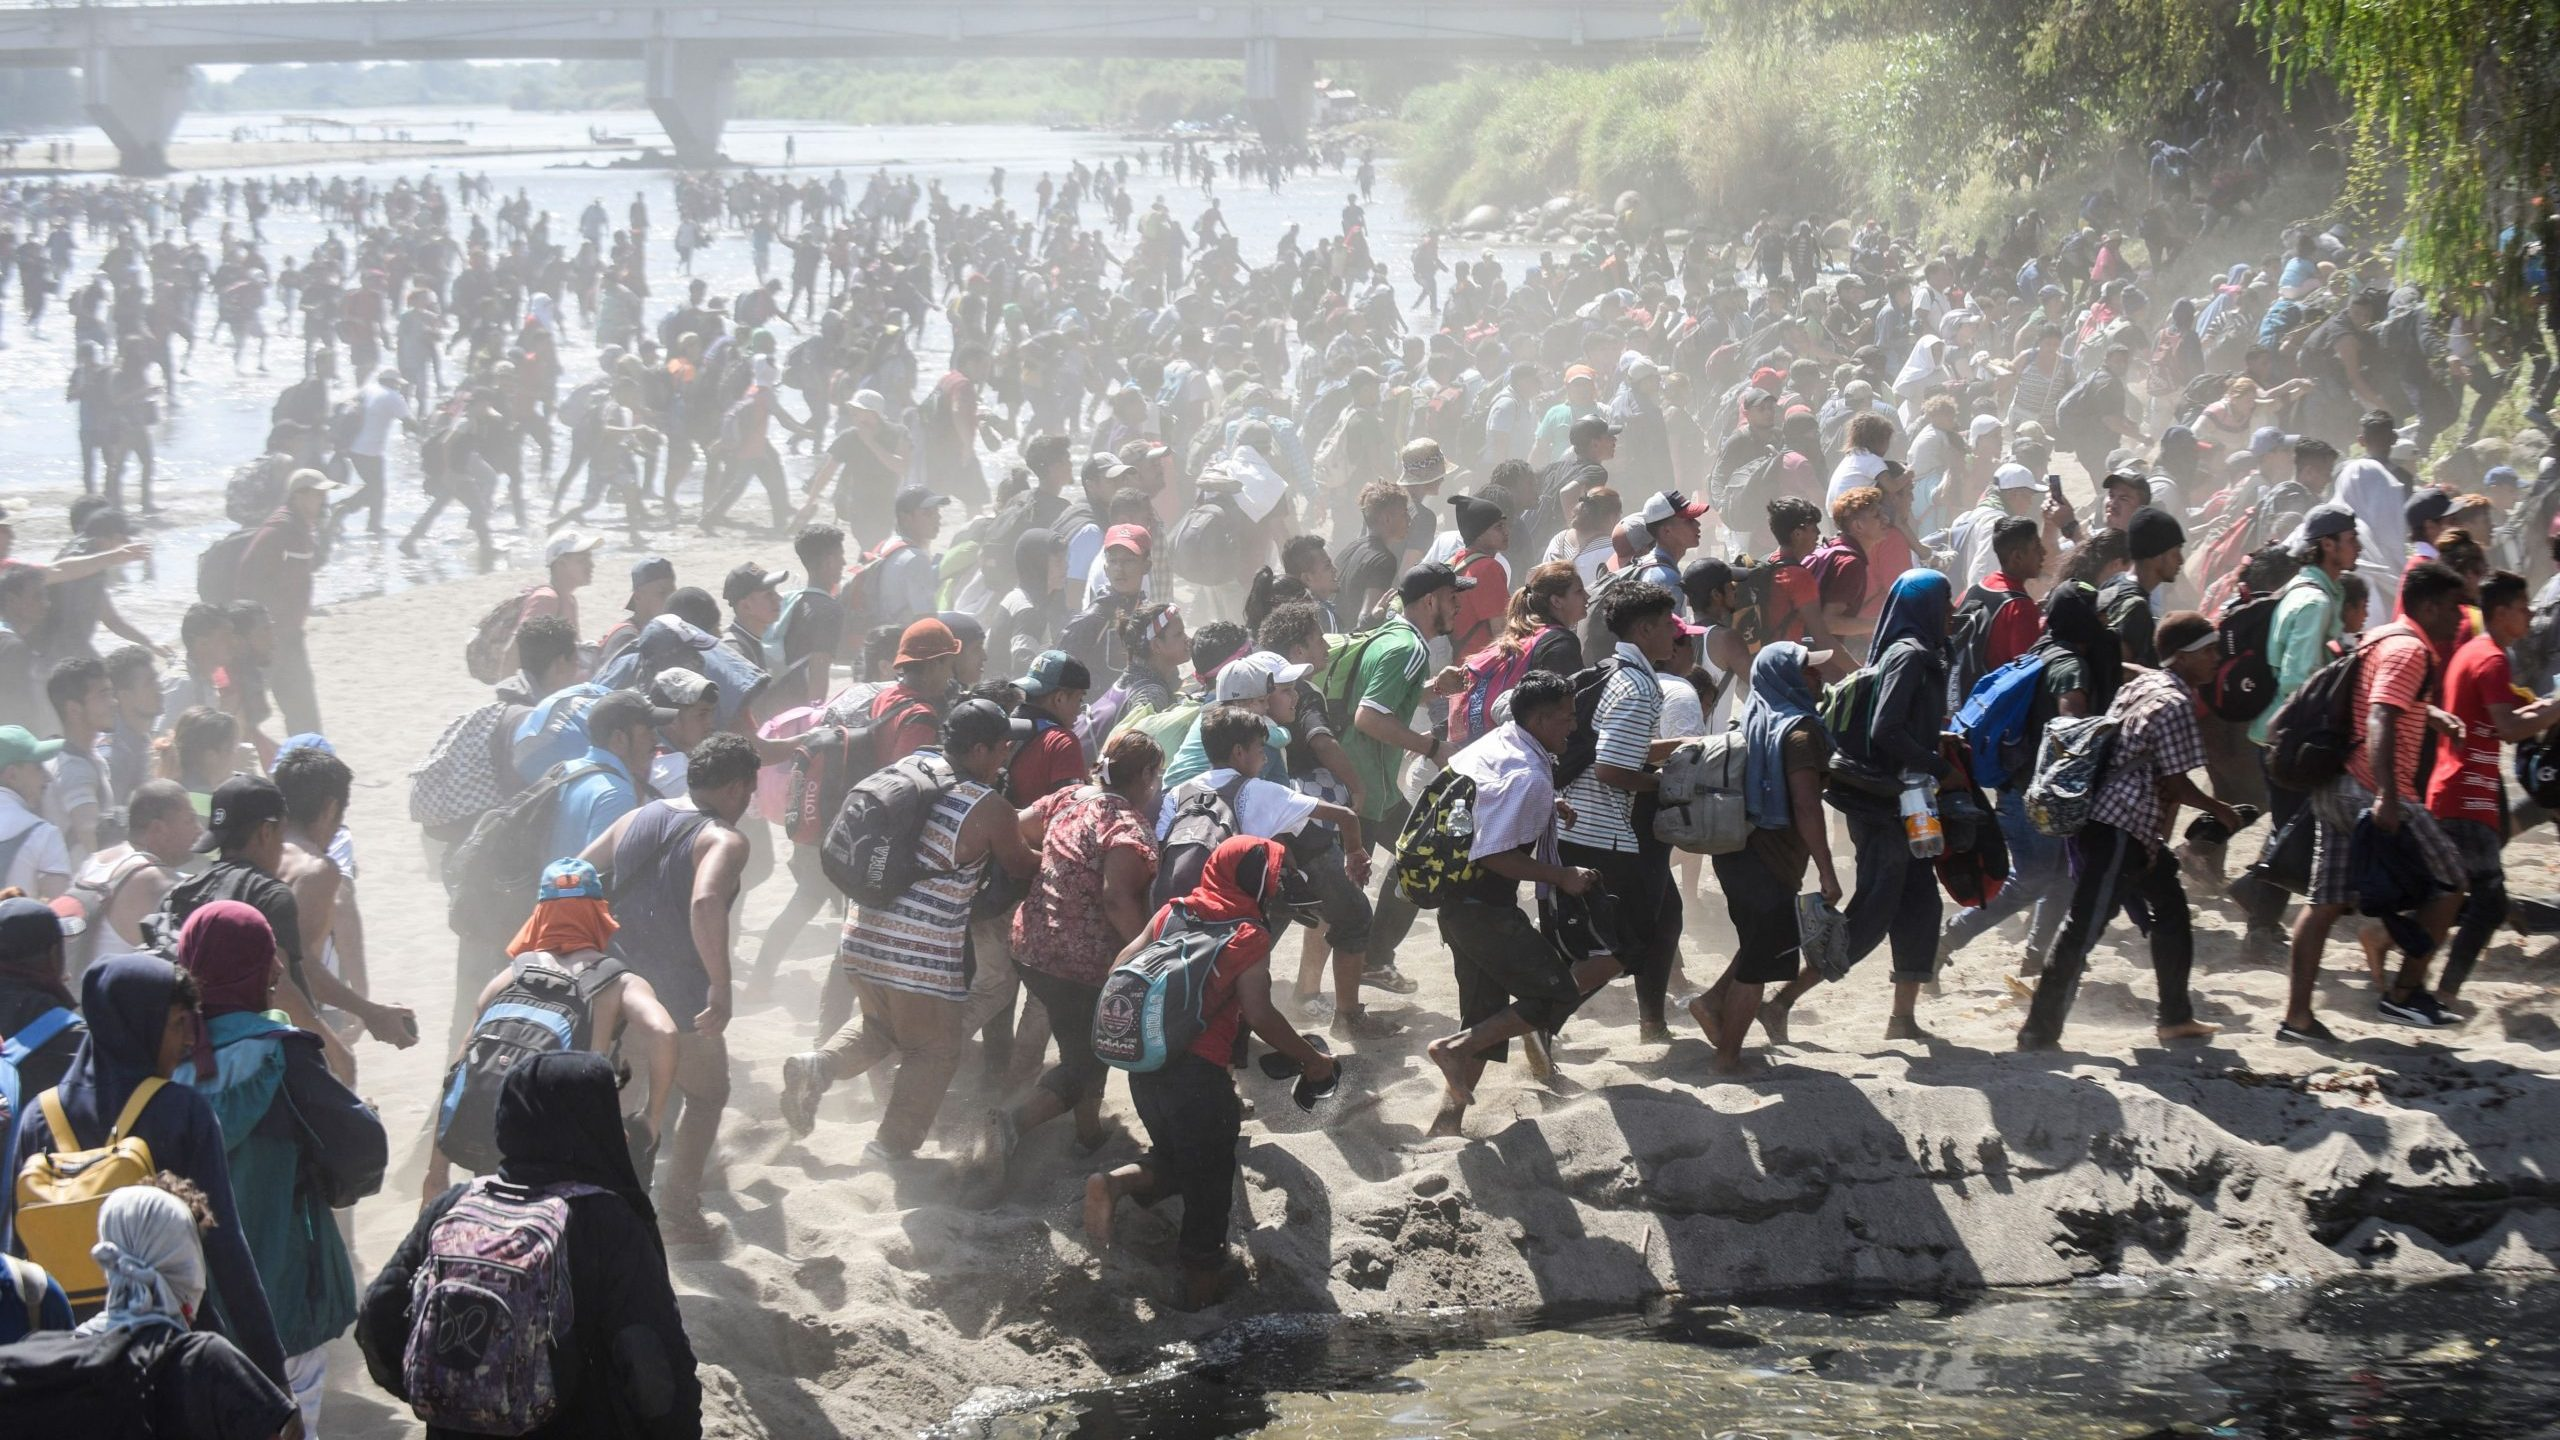 Central American migrants traveling in caravan cross the Suchiate River, the natural border between Guatemala and Mexico, near Ciudad Hidalgo on Jan. 20, 2020. (Credit: Johan Ordonez / AFP / Getty Images)